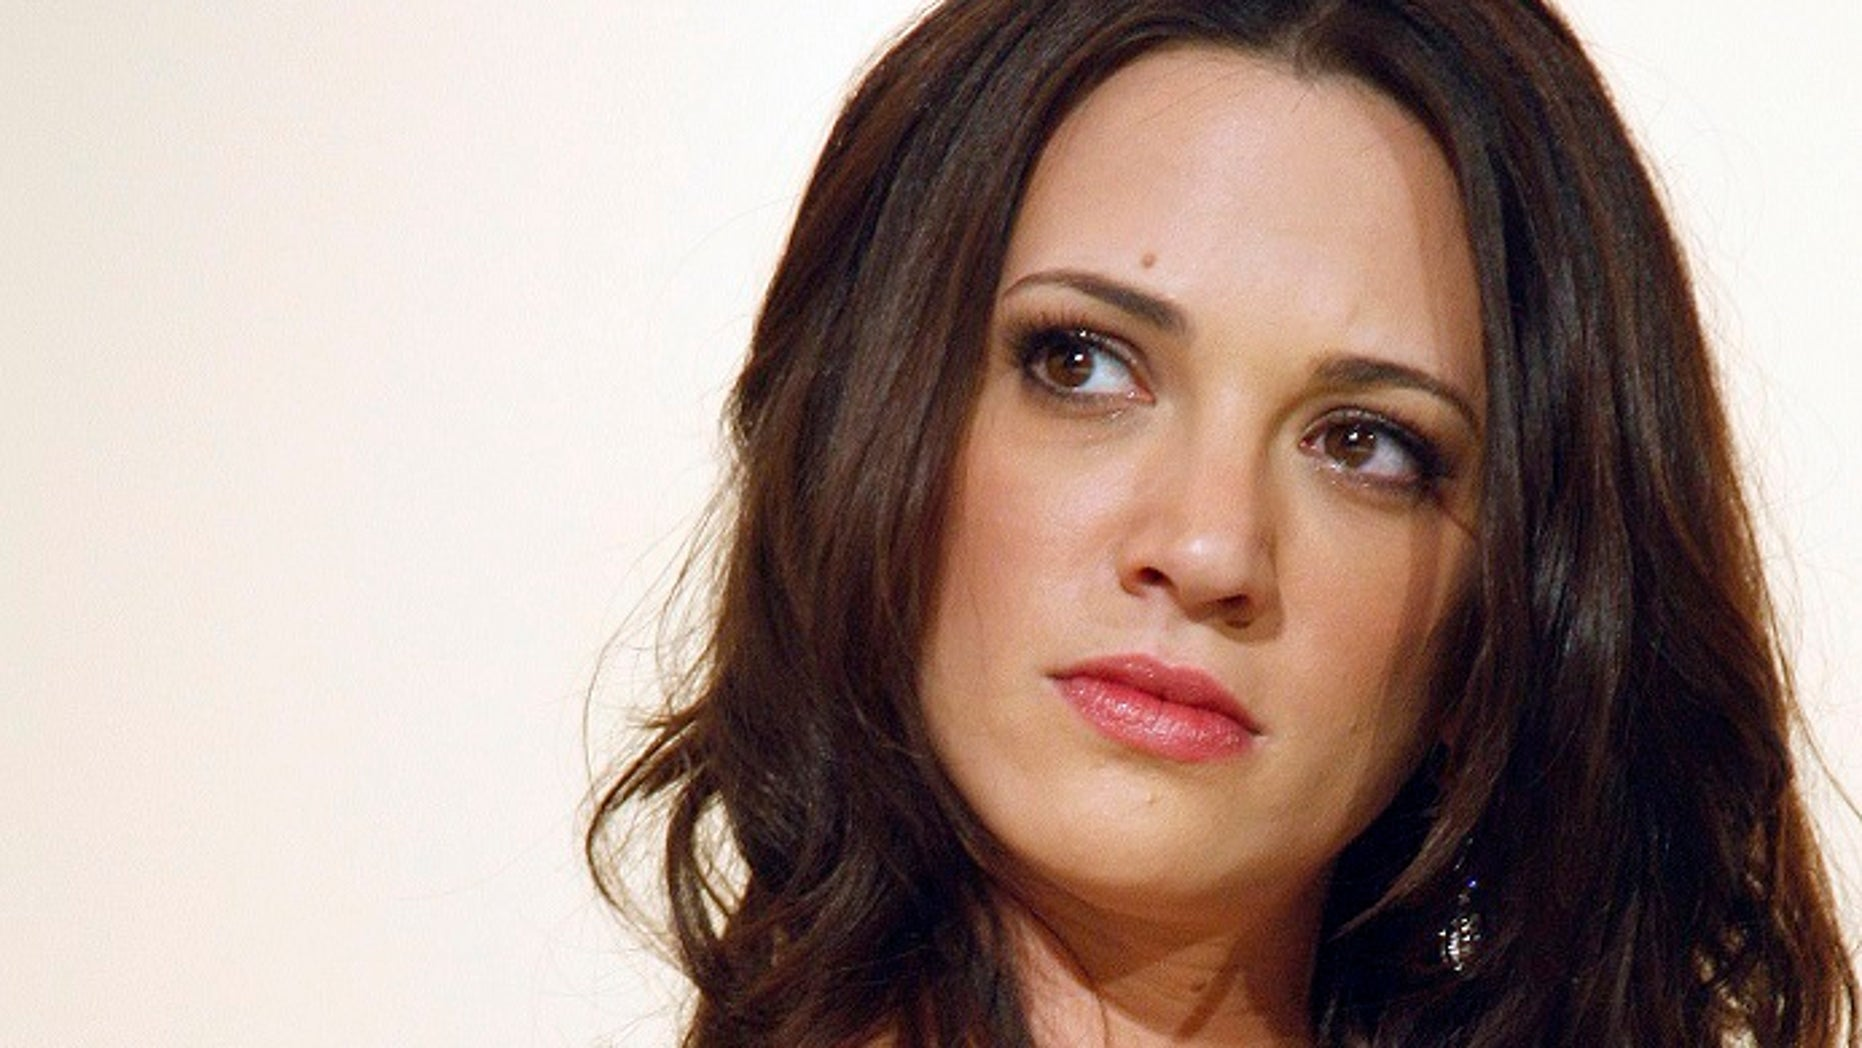 Actress and filmmaker Asia Argento accused Harvey Weinstein of forcibly performing oral sex on her despite her objections when she was just 21.